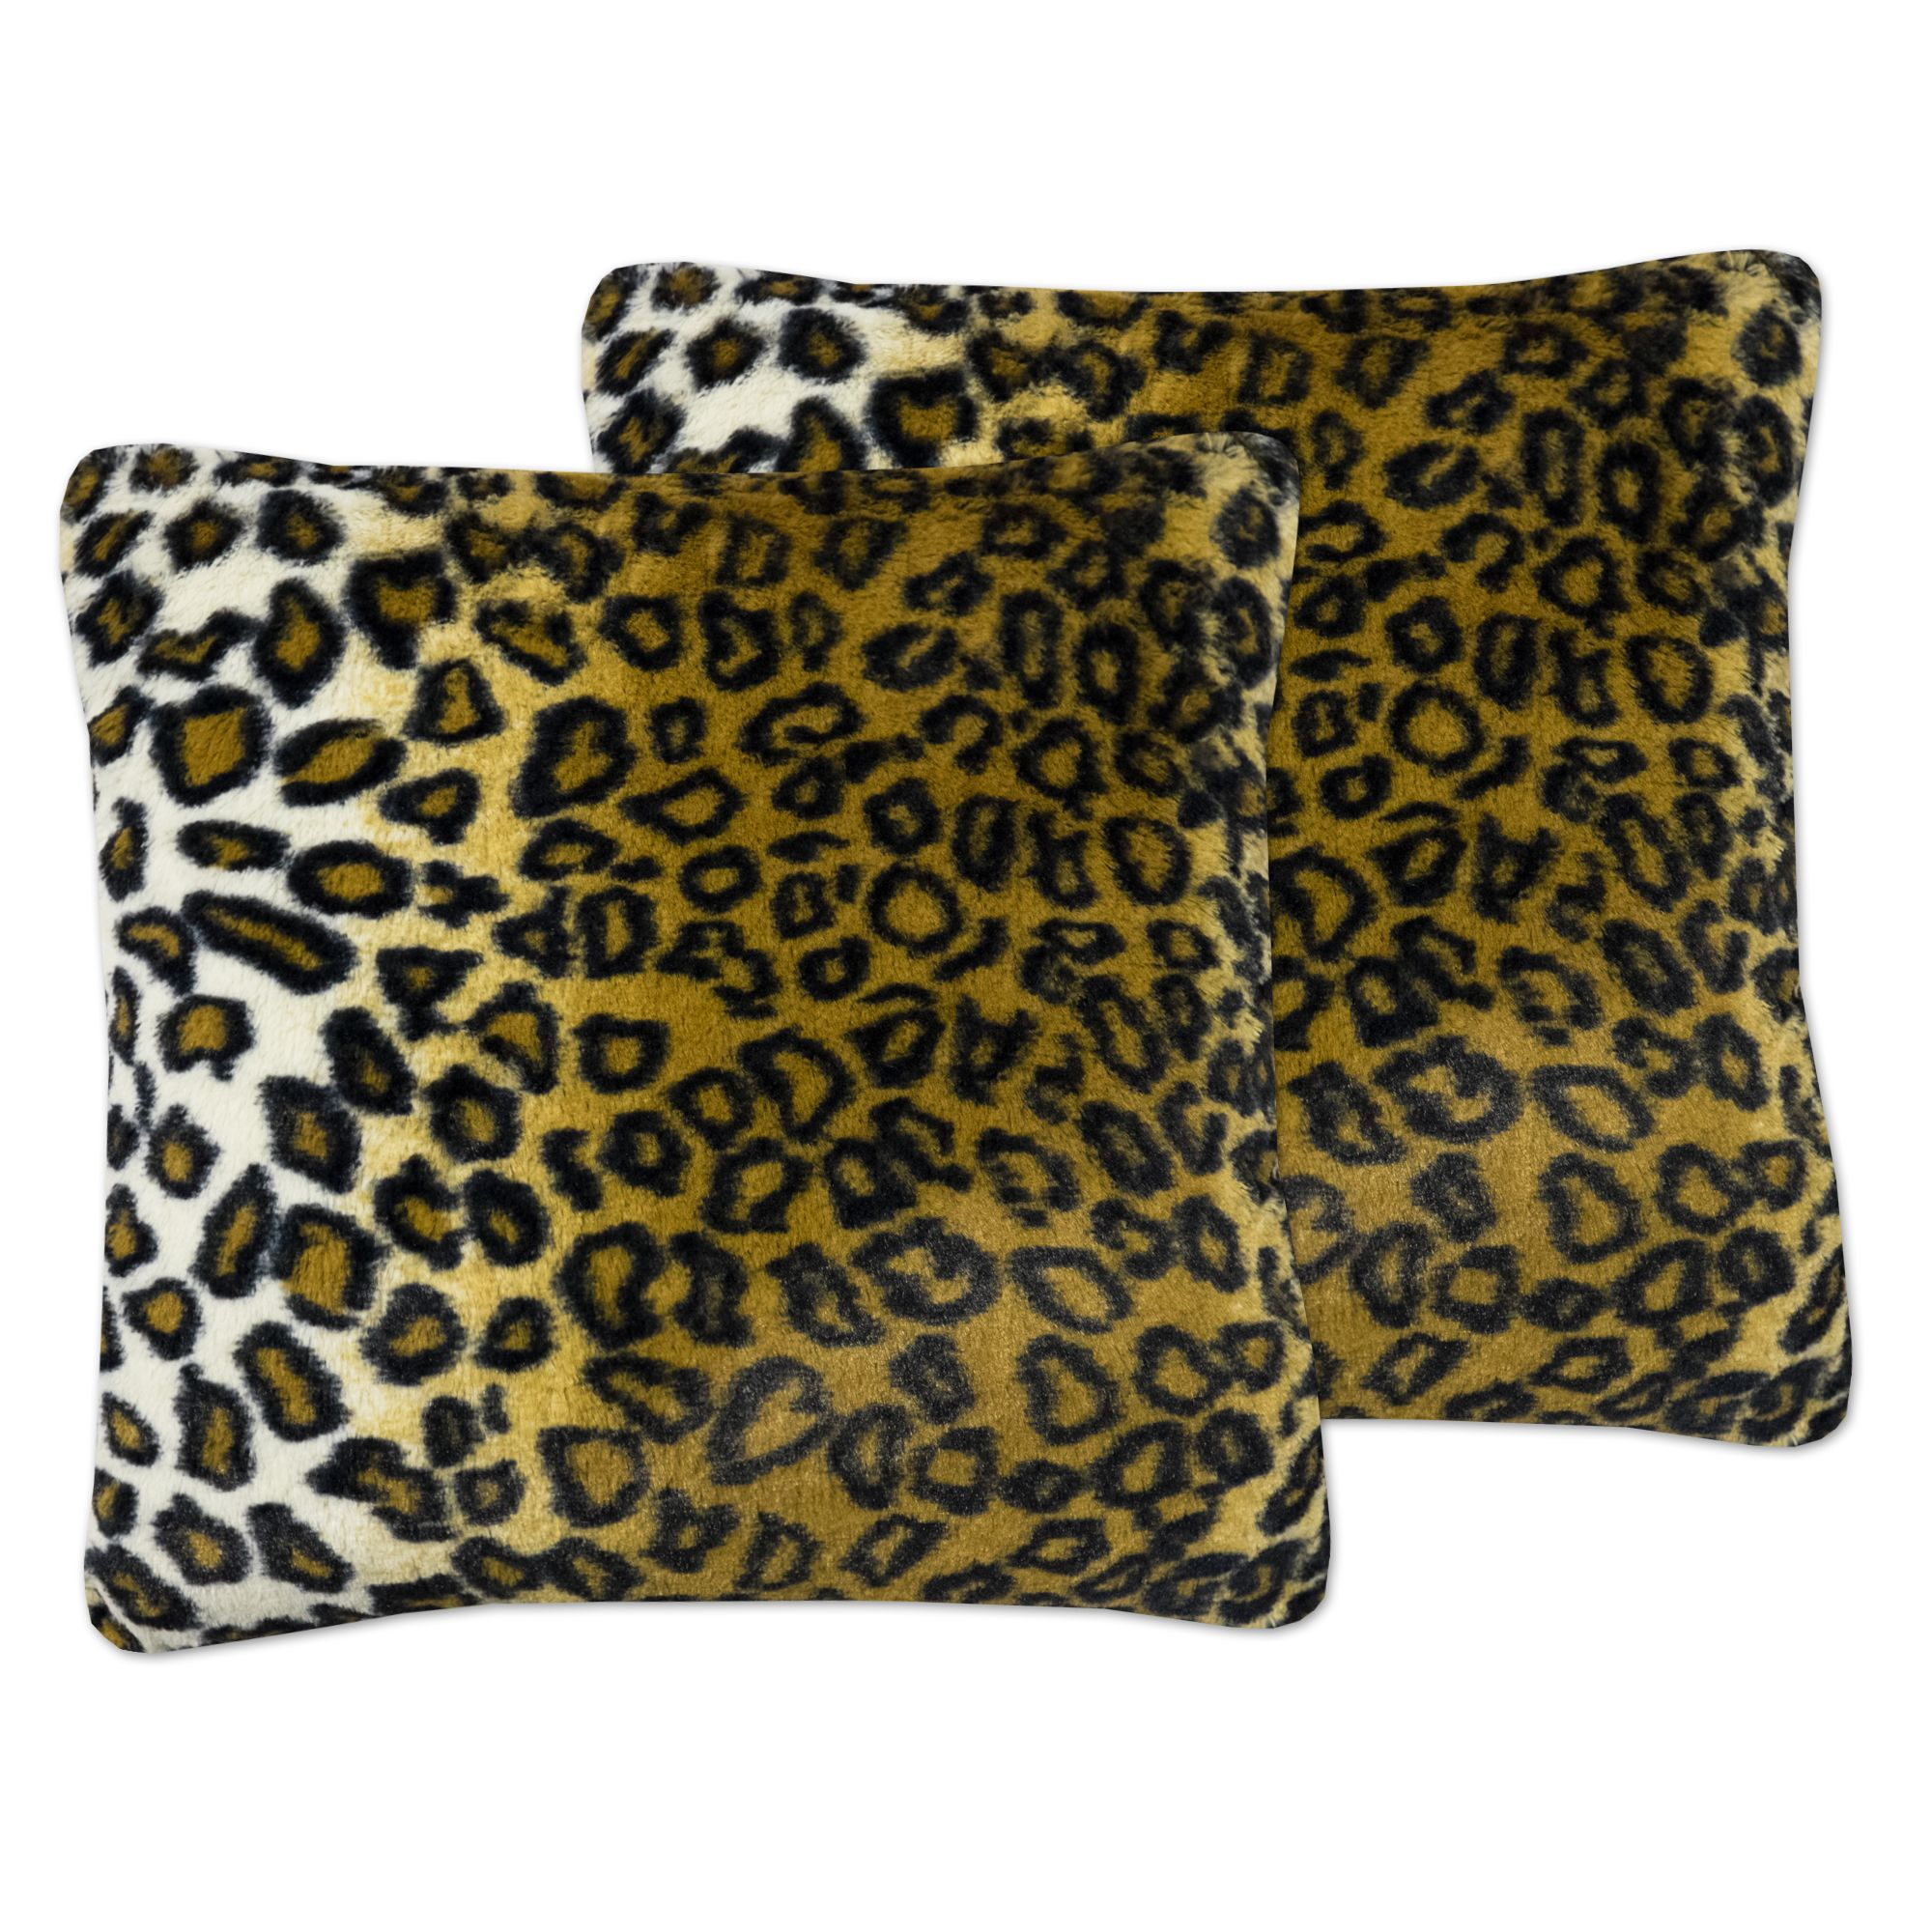 Sweet Home Collection Leopard Print Plush 18-inch x 18-inch Accent Pillows